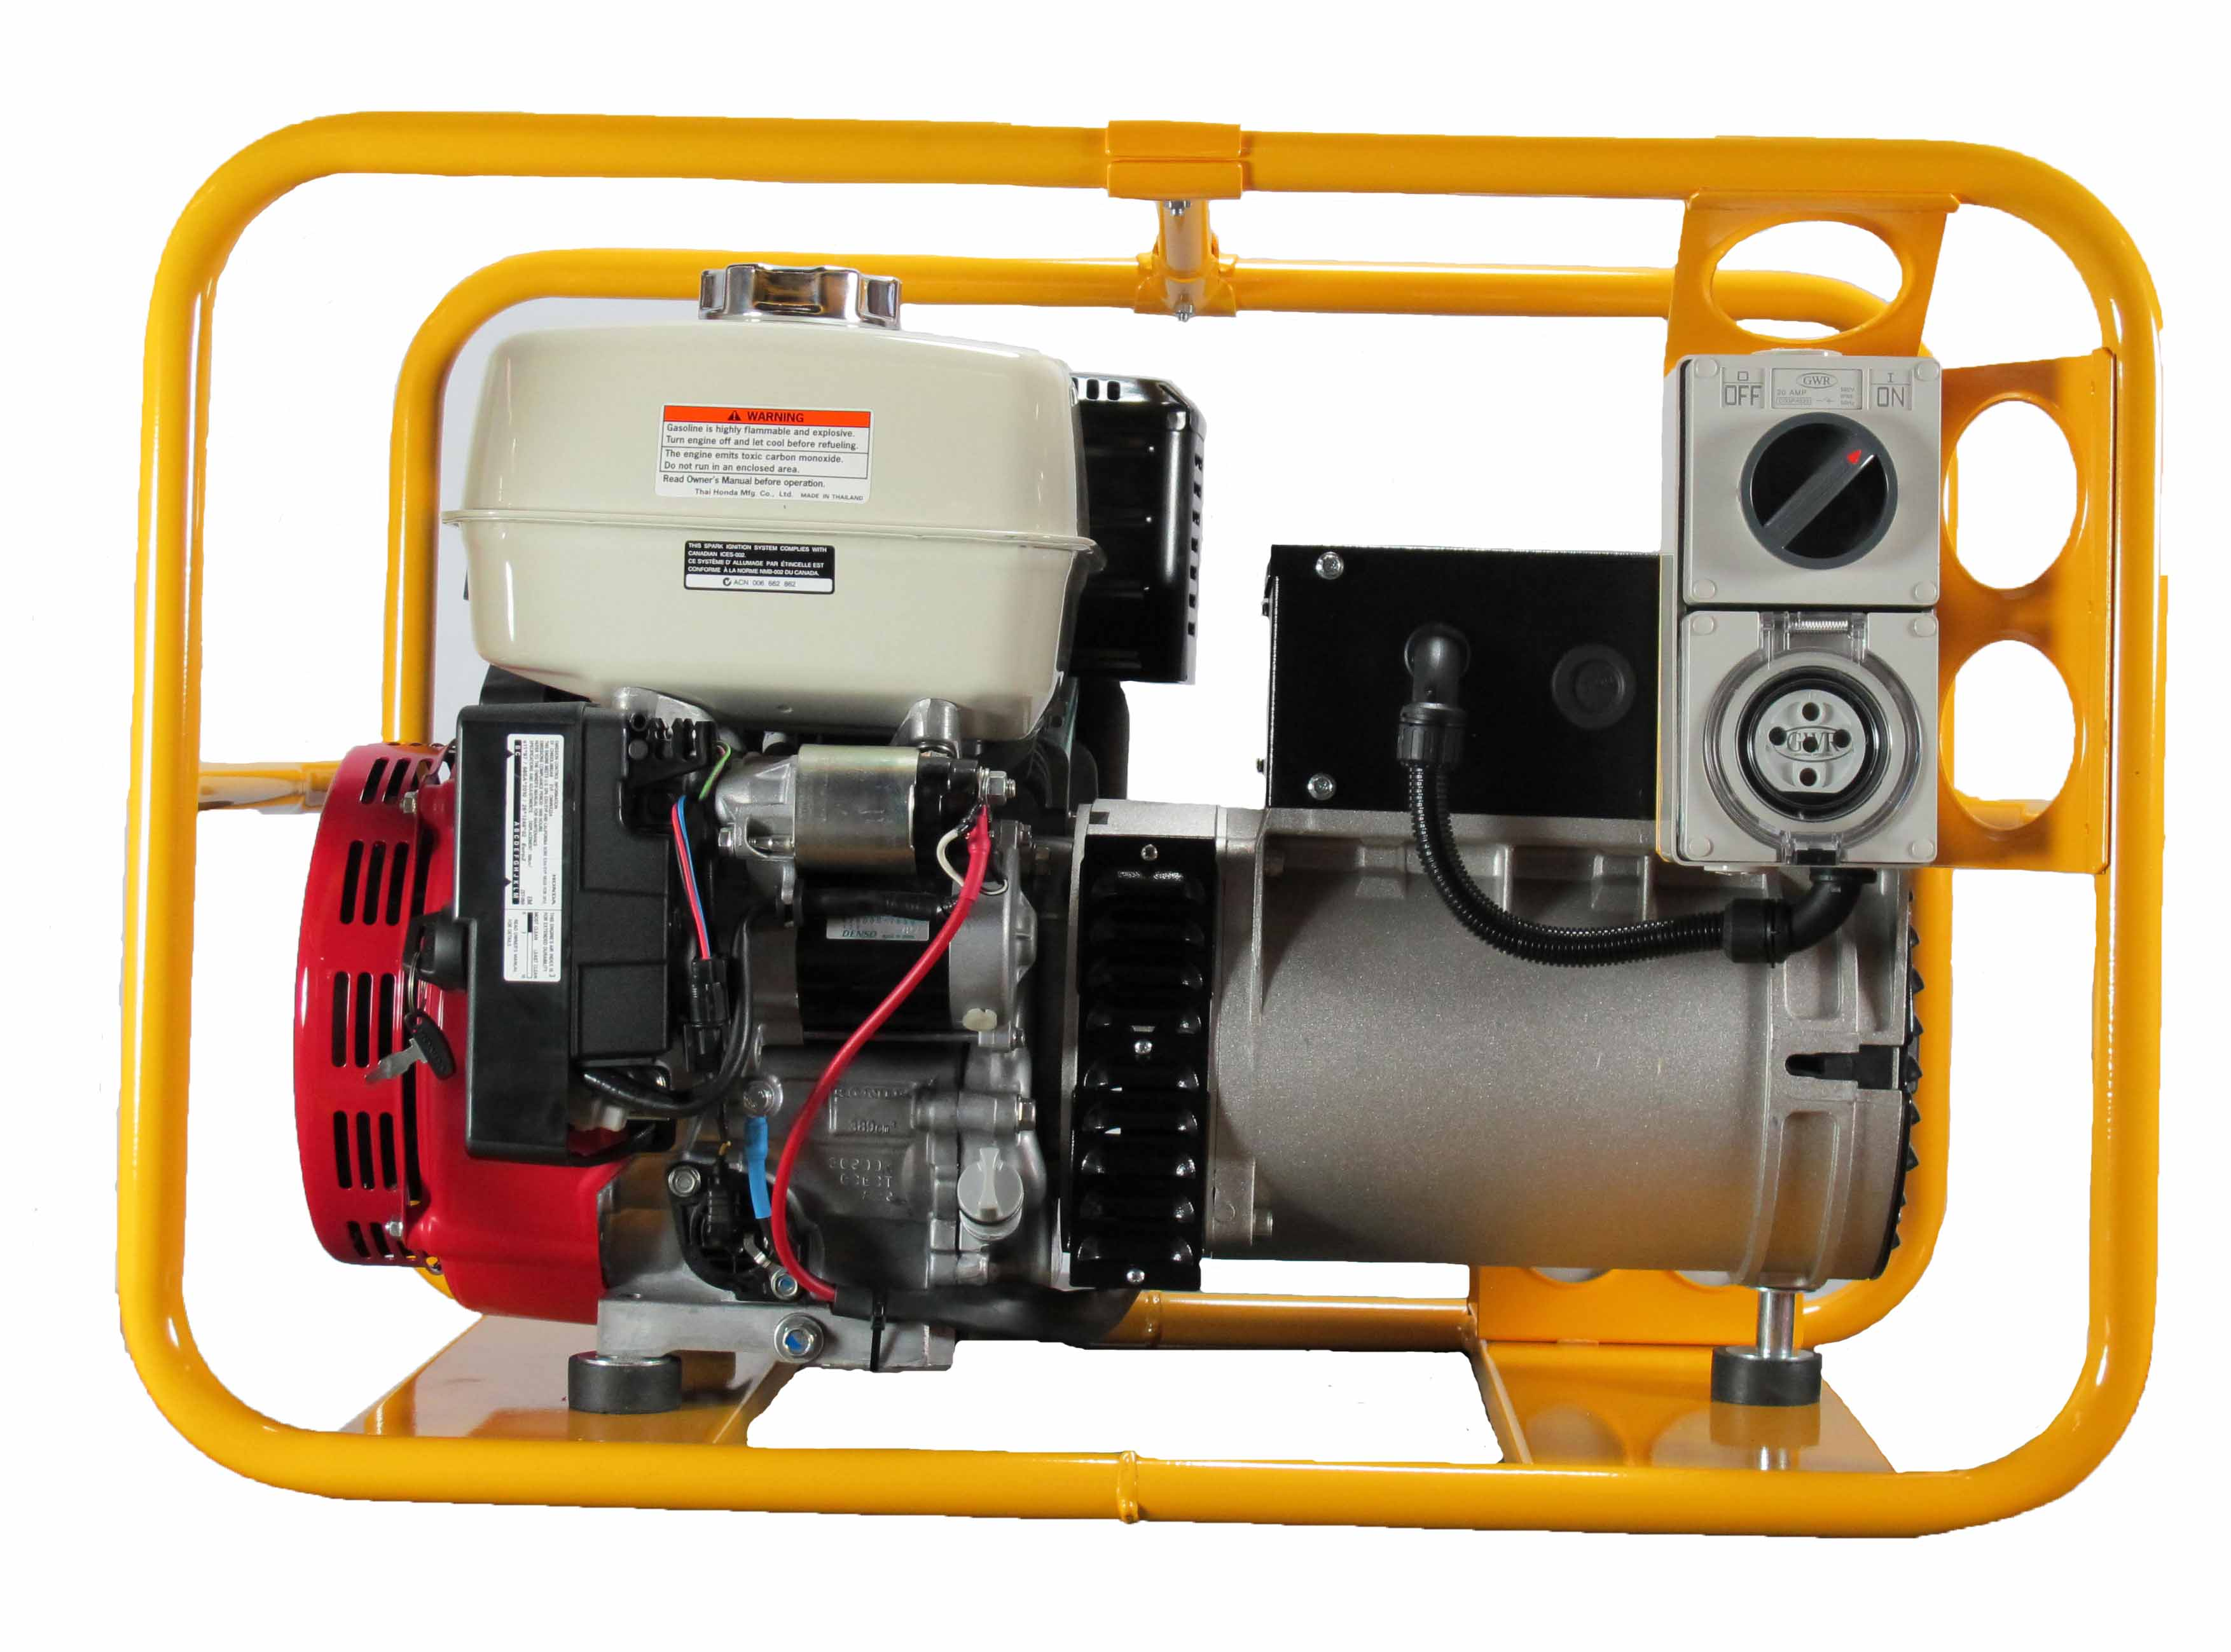 PH080E 3 – 7 000W Generator with battery